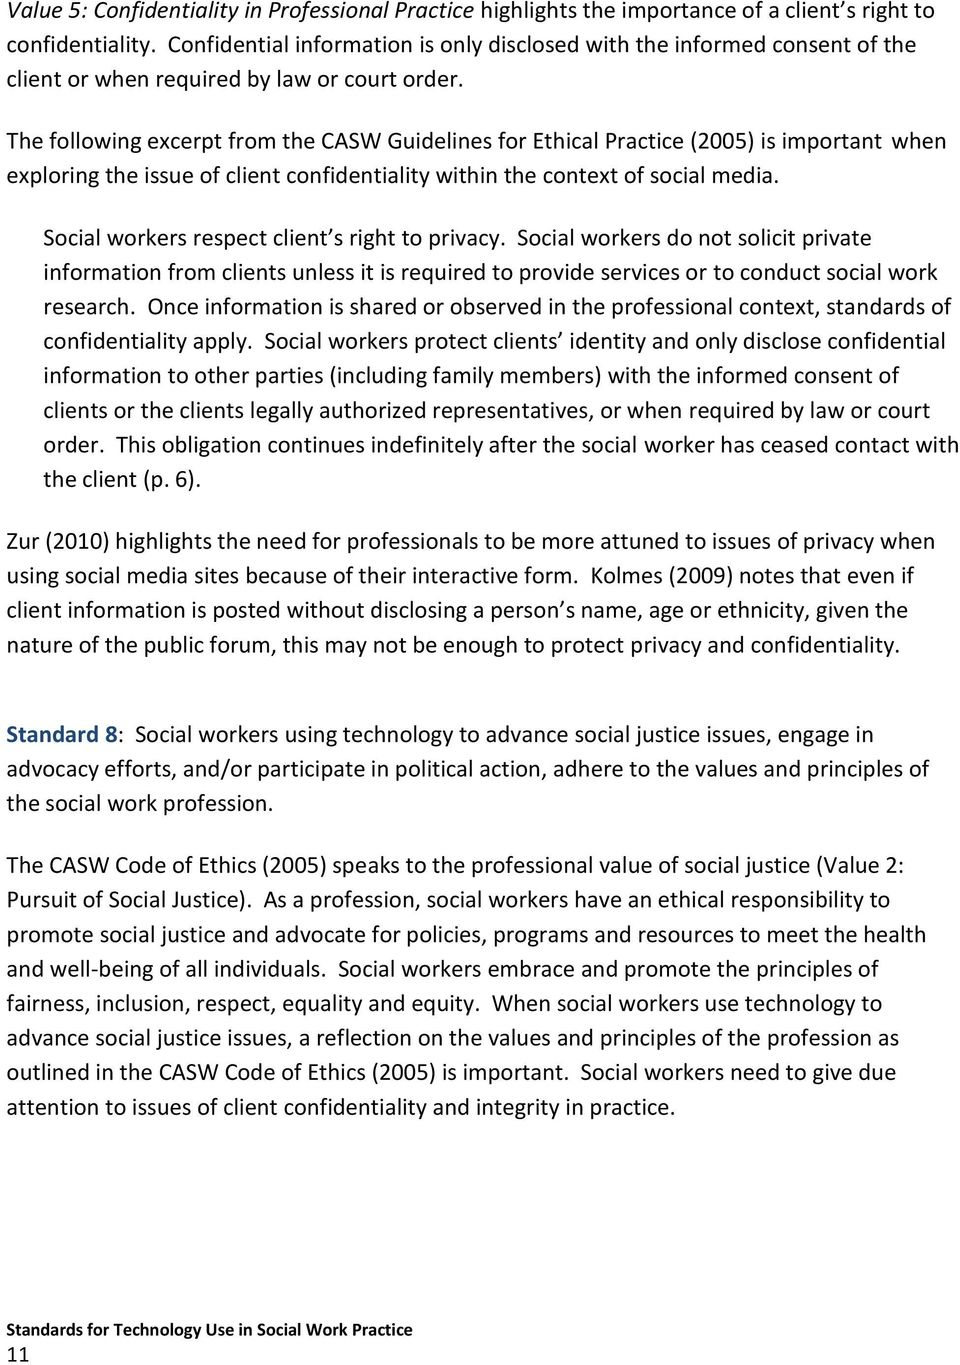 The following excerpt from the CASW Guidelines for Ethical Practice (2005) is important when exploring the issue of client confidentiality within the context of social media.